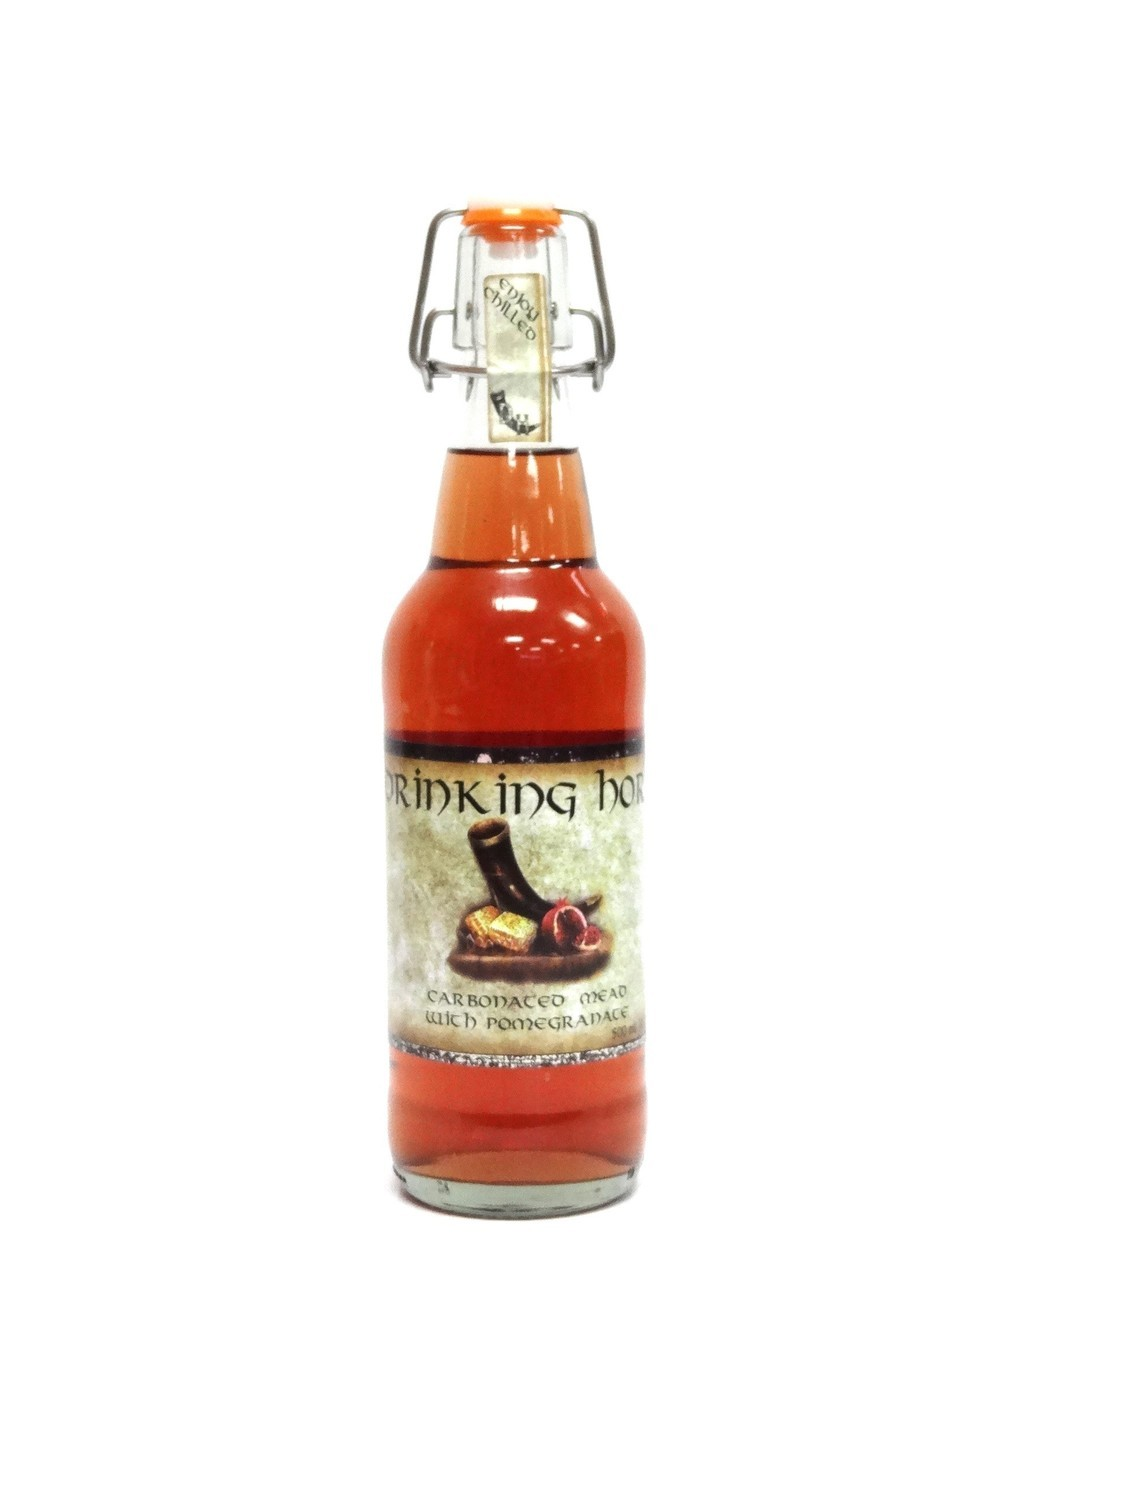 Pomegranate Carbonated Mead By Drinking Horn Meadery From Flagstaff, AZ 500ml Bottle ()DH